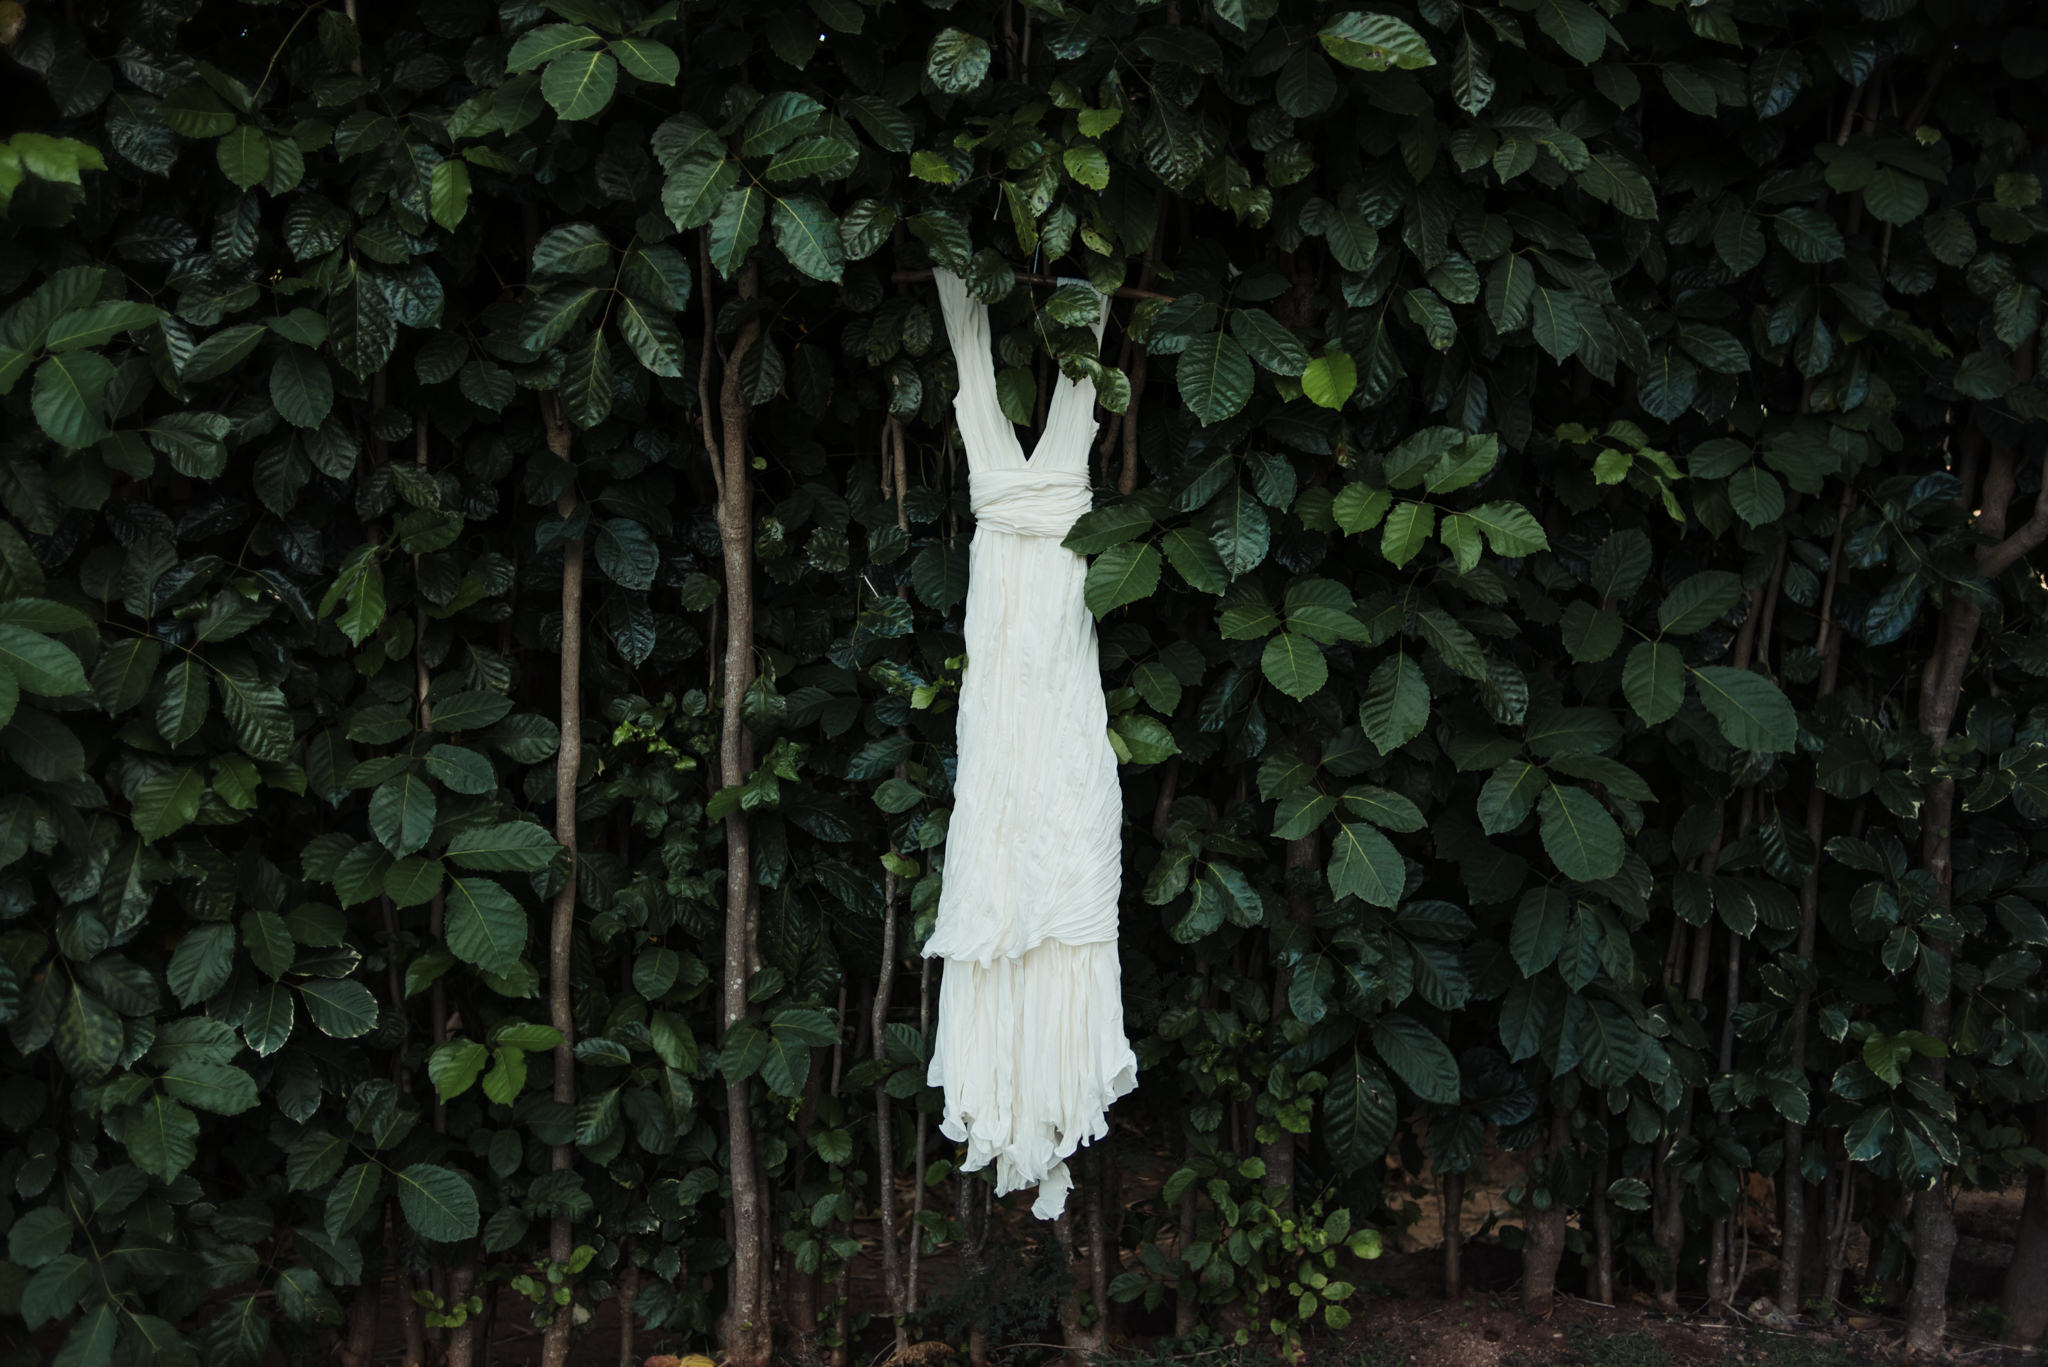 Dress hanging on living greenery wall